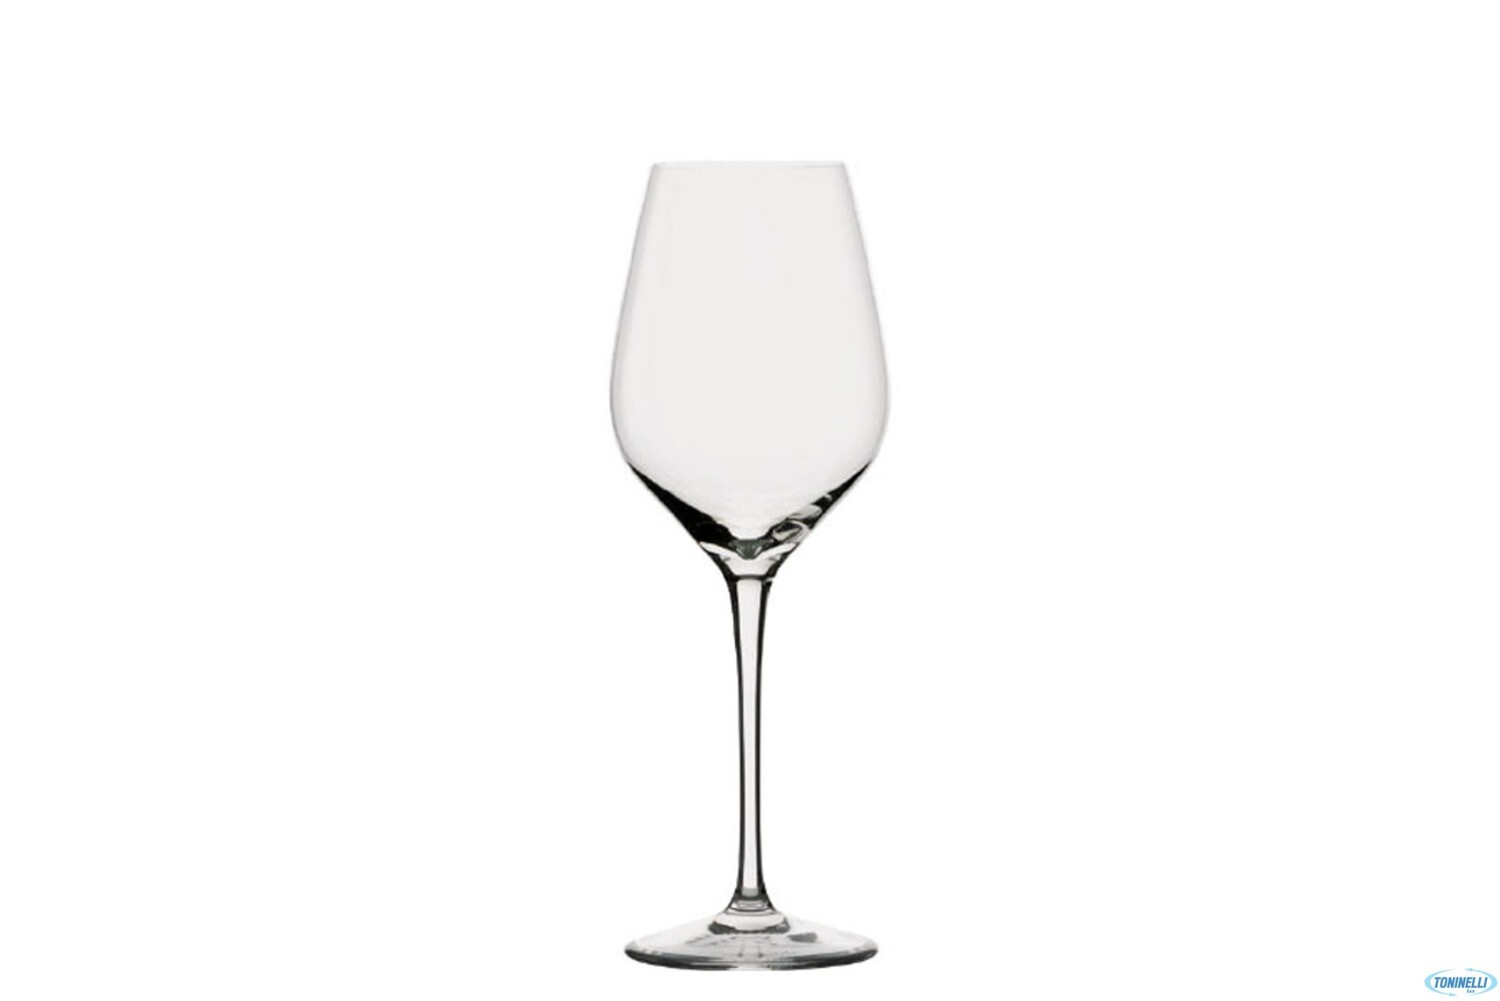 EXQUISIT ROYAL - CALICE VINI FRIZZ CL 35